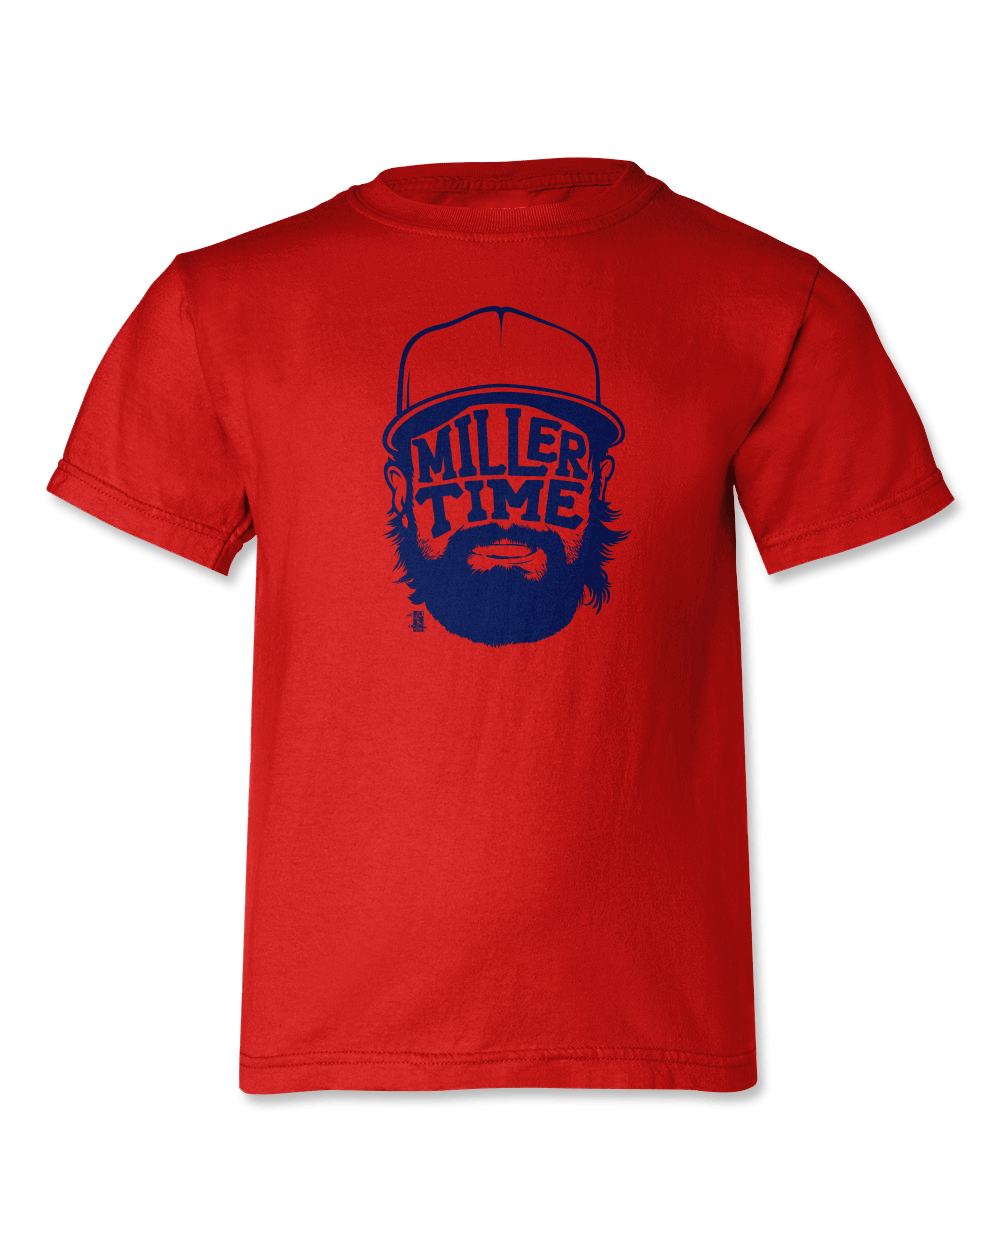 Andrew Miller Miller Time Youth T-shirt